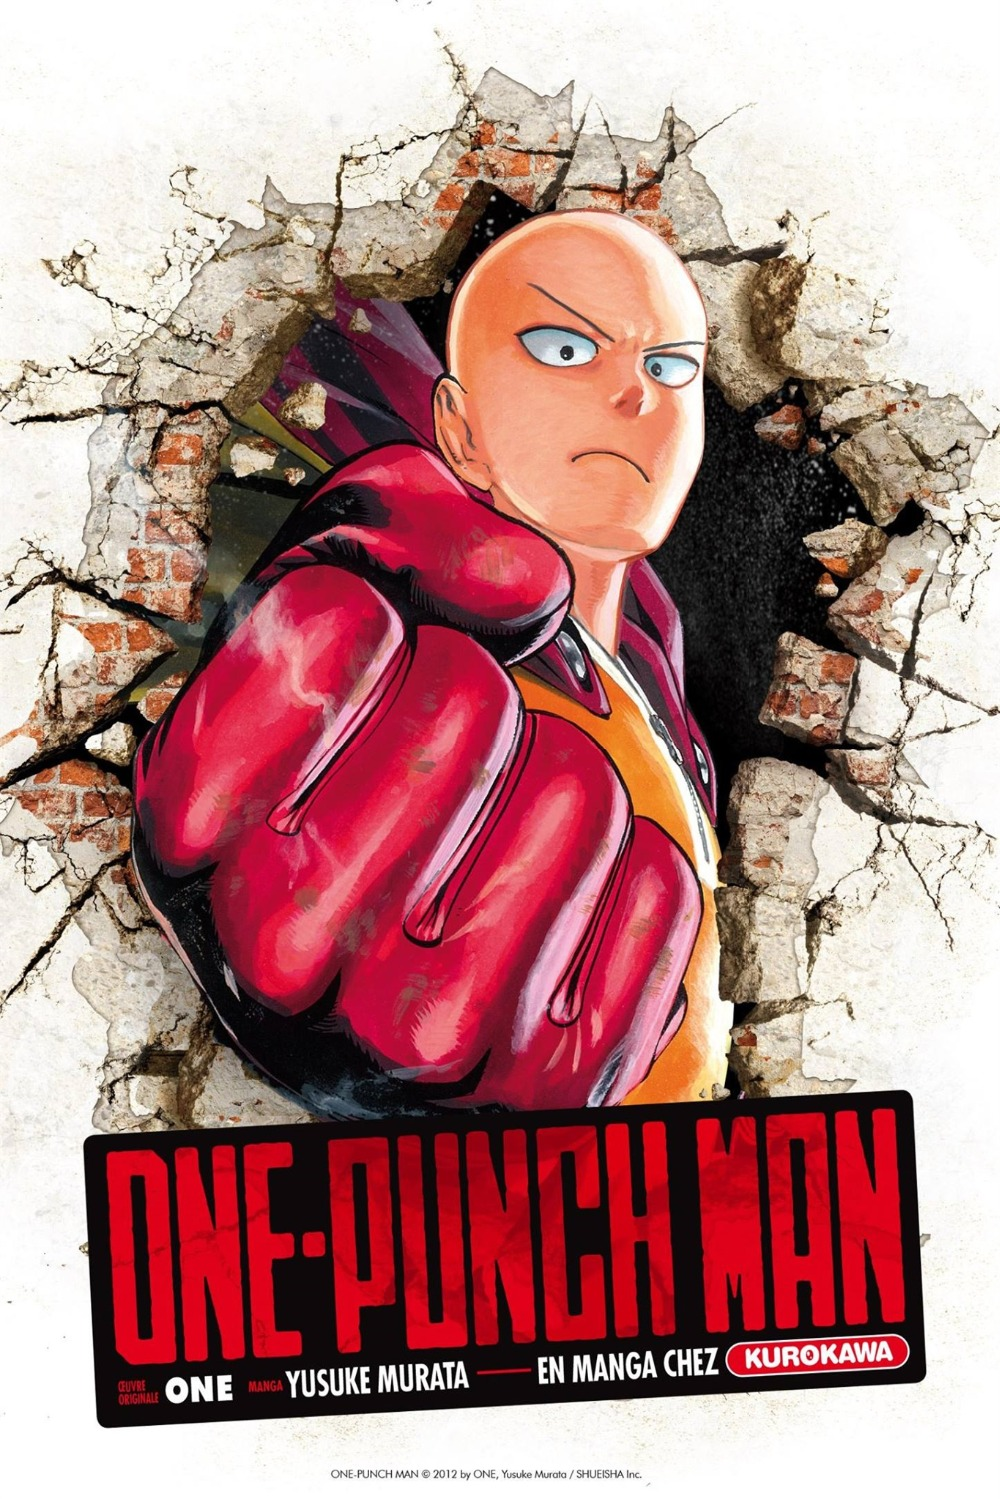 ONE PUNCH MAN Art Silk Poster Print 12x18 24x36 inches Japanese Anime Pictures for Living Room Decor Wallpaper SAITIMA DM423(China (Mainland))